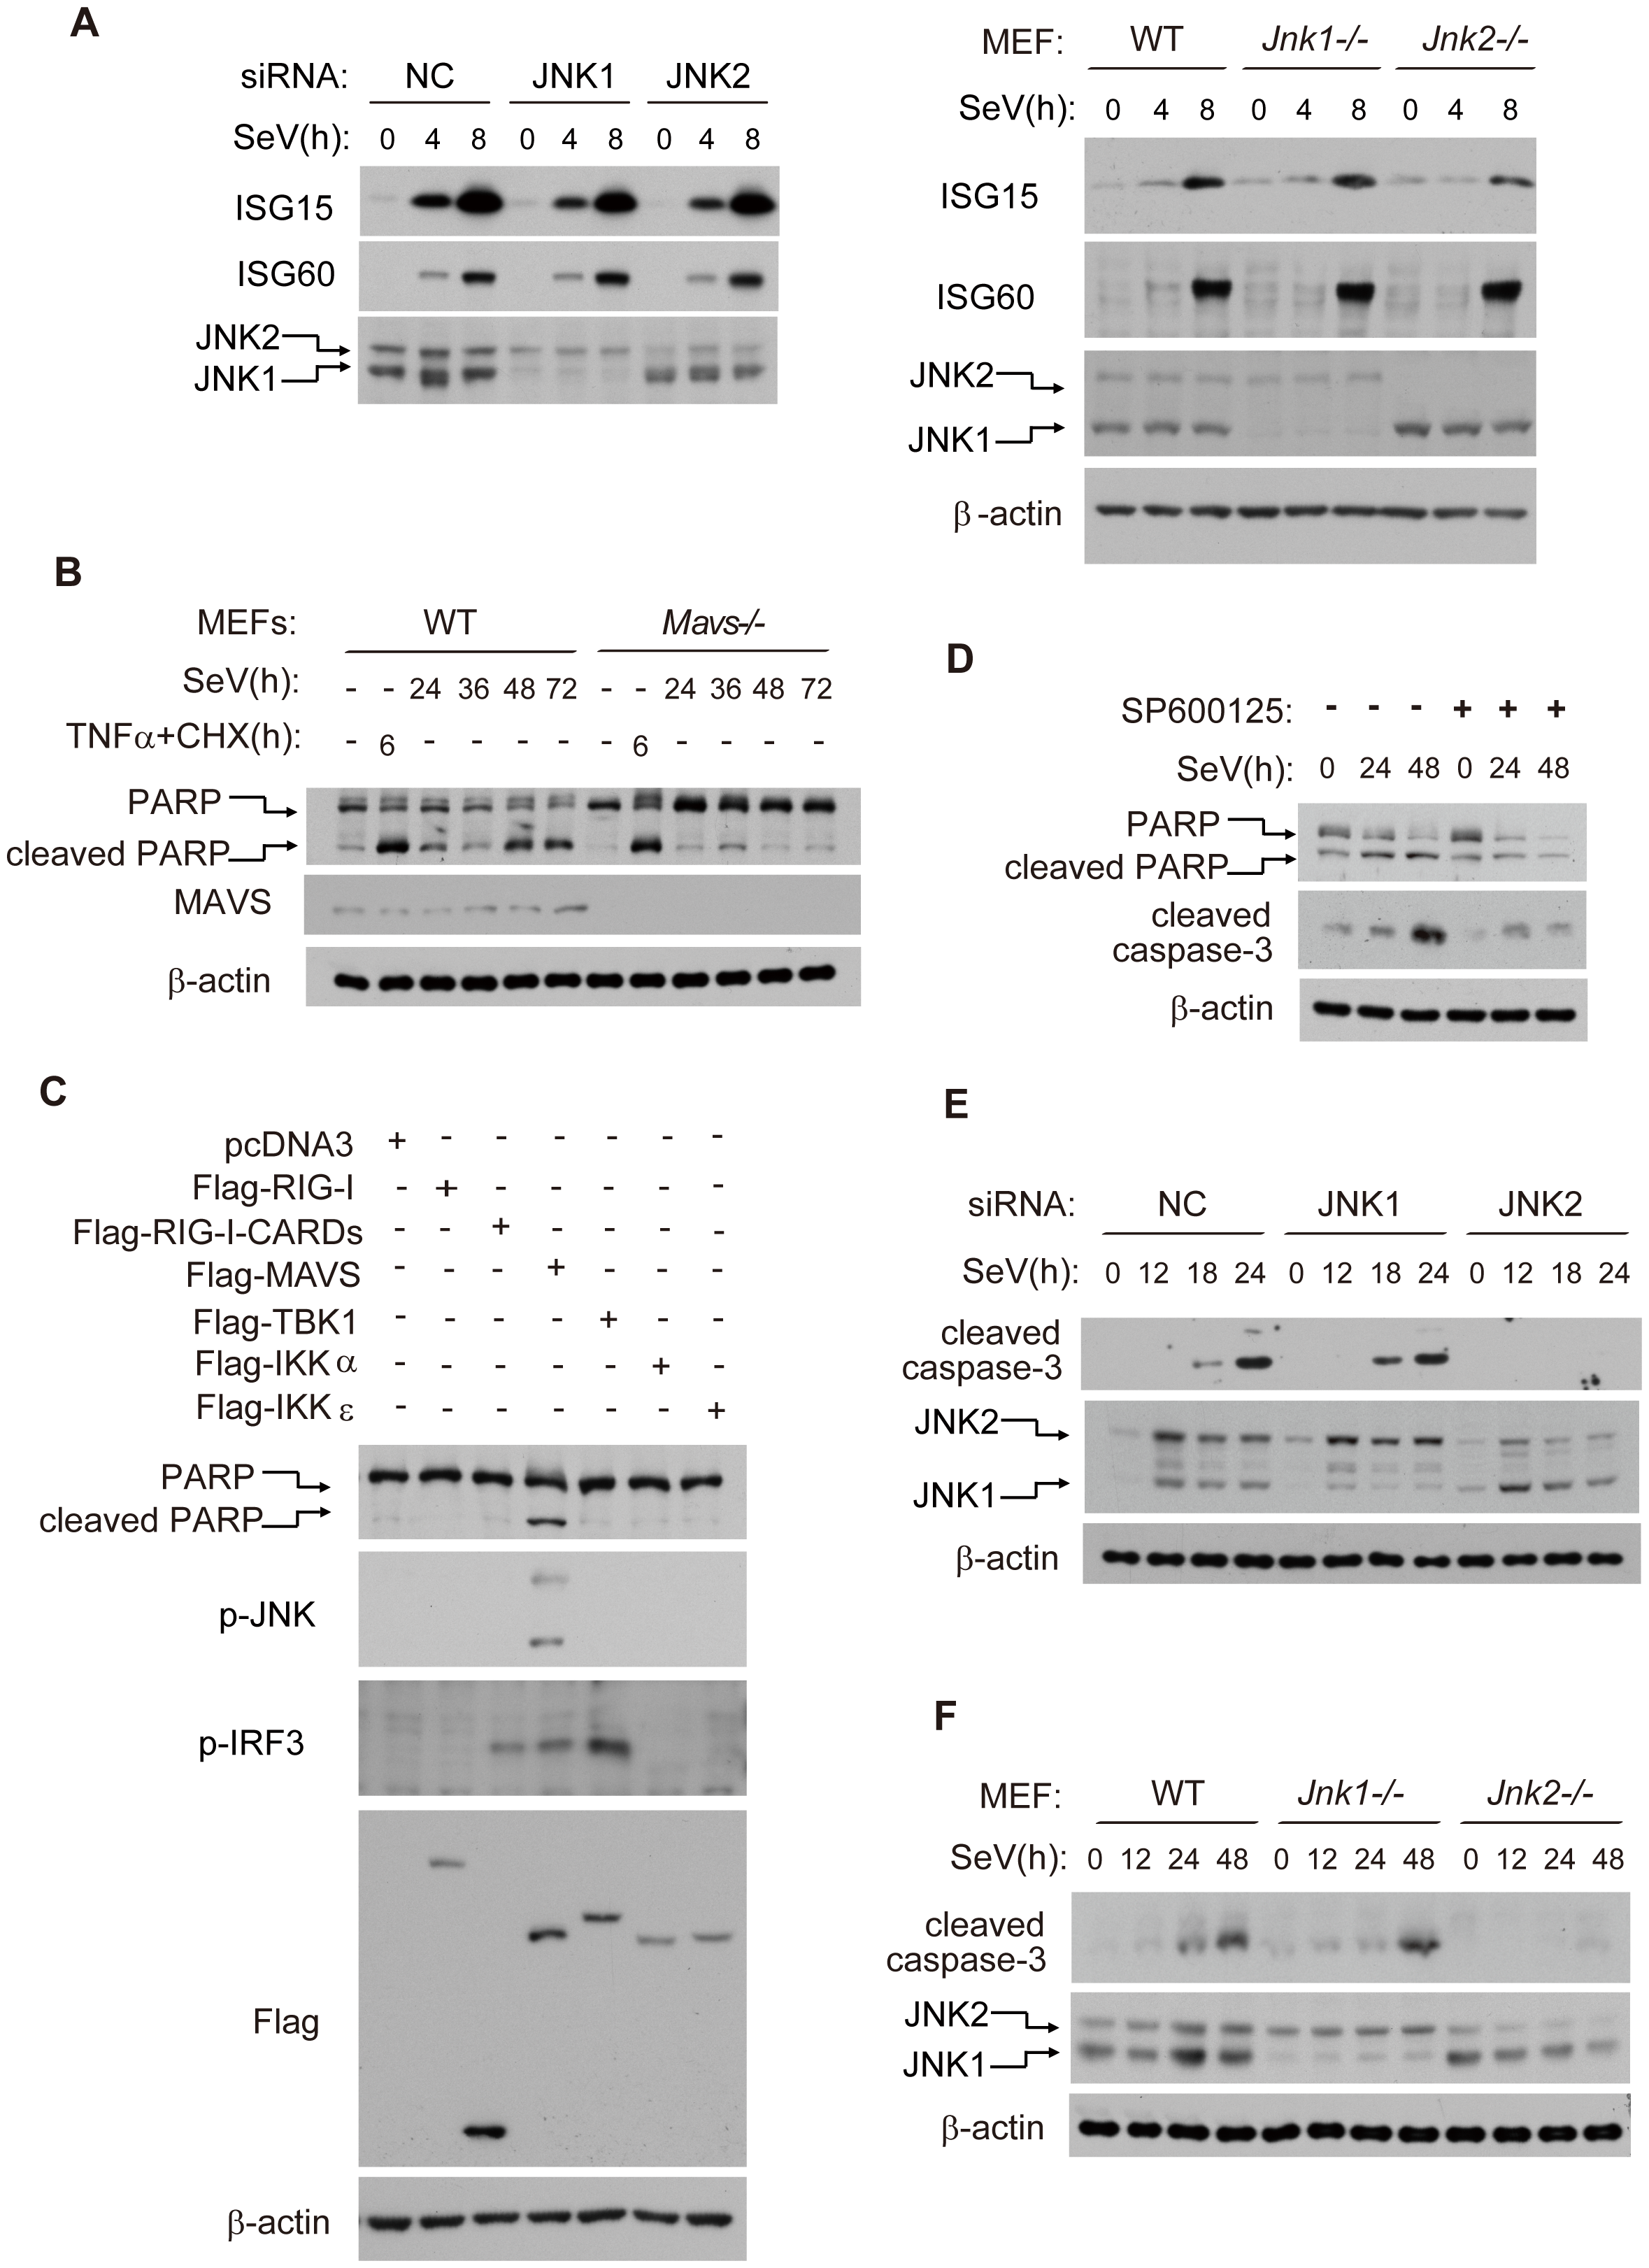 JNK2, but not JNK1, is essential for virus-induced apoptosis.